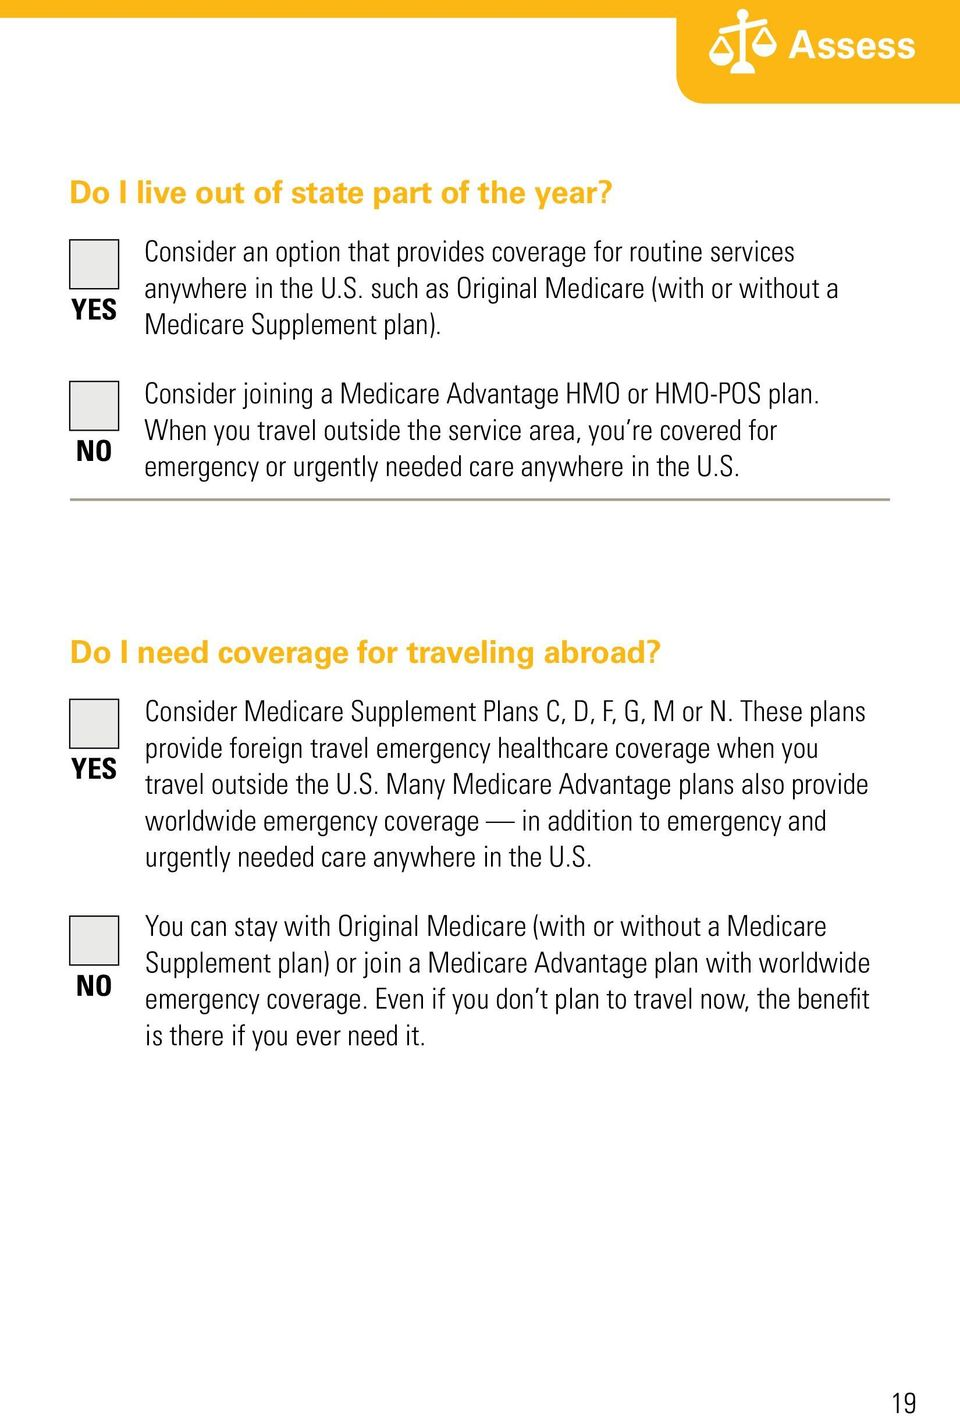 YES NO Consider Medicare Supplement Plans C, D, F, G, M or N. These plans provide foreign travel emergency healthcare coverage when you travel outside the U.S. Many Medicare Advantage plans also provide worldwide emergency coverage in addition to emergency and urgently needed care anywhere in the U.